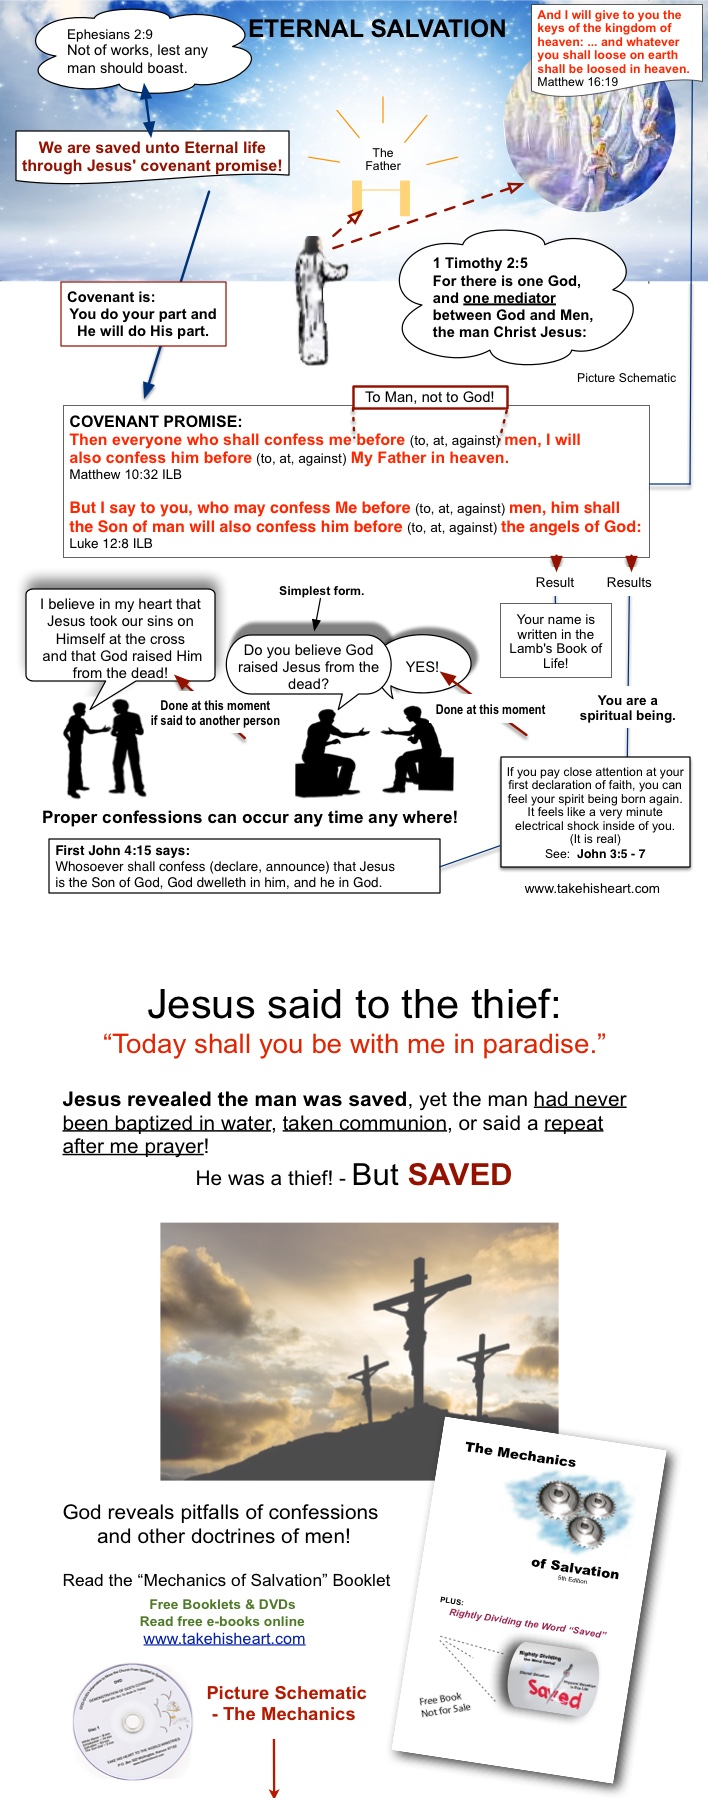 FOOLPROOF Schematic of the Mechanics of Eternal Salvation on